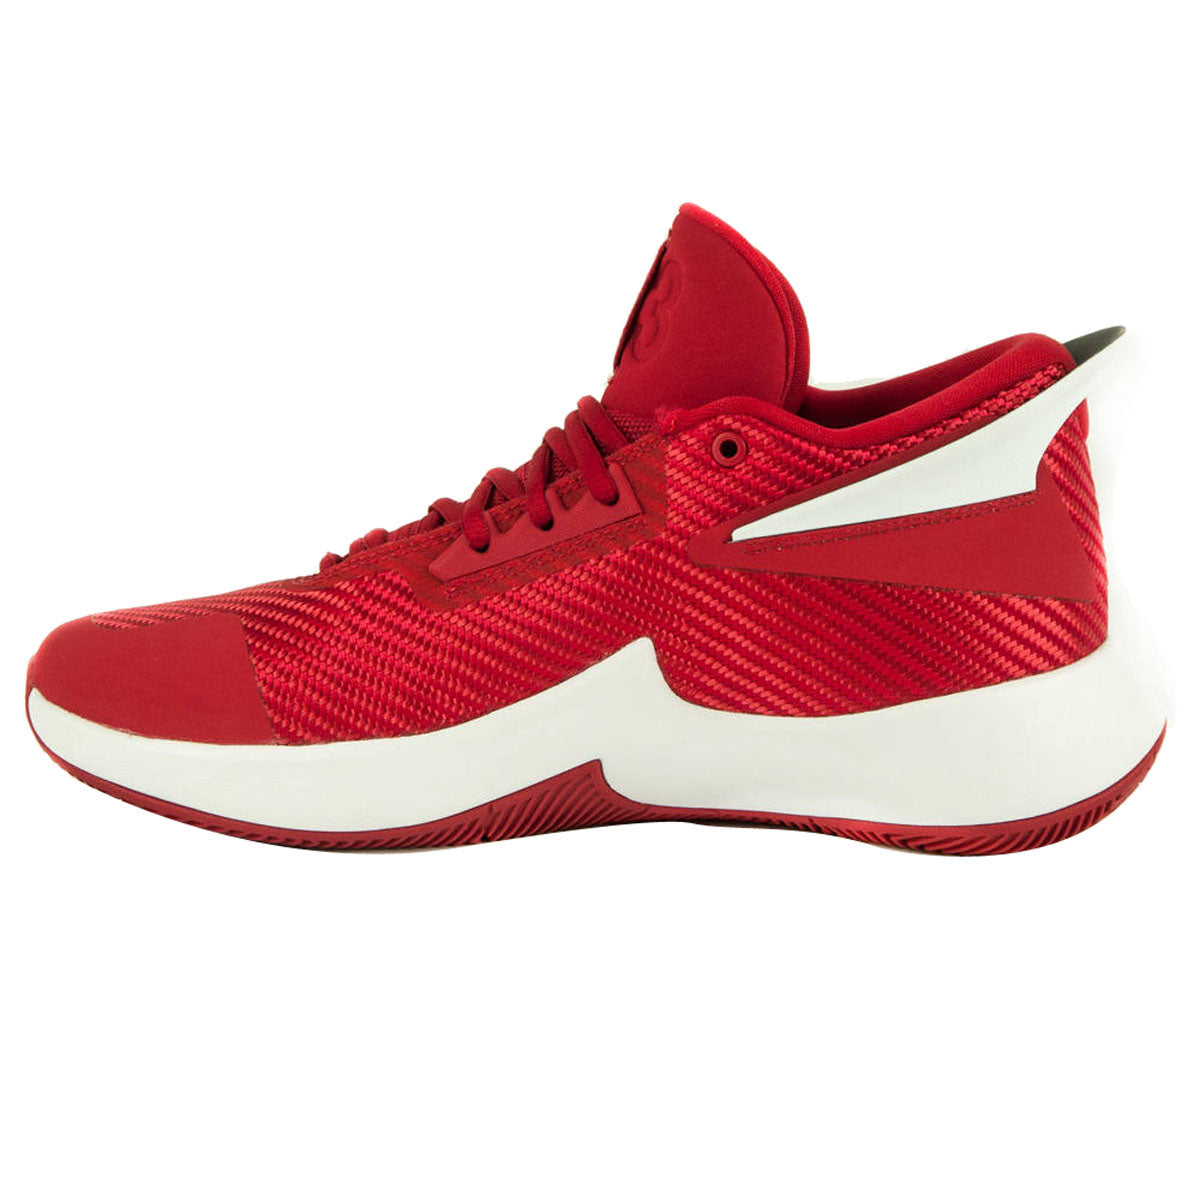 Nike Jordan Fly Lockdown Basketball Boot/Shoe - Gym Red/Black/White